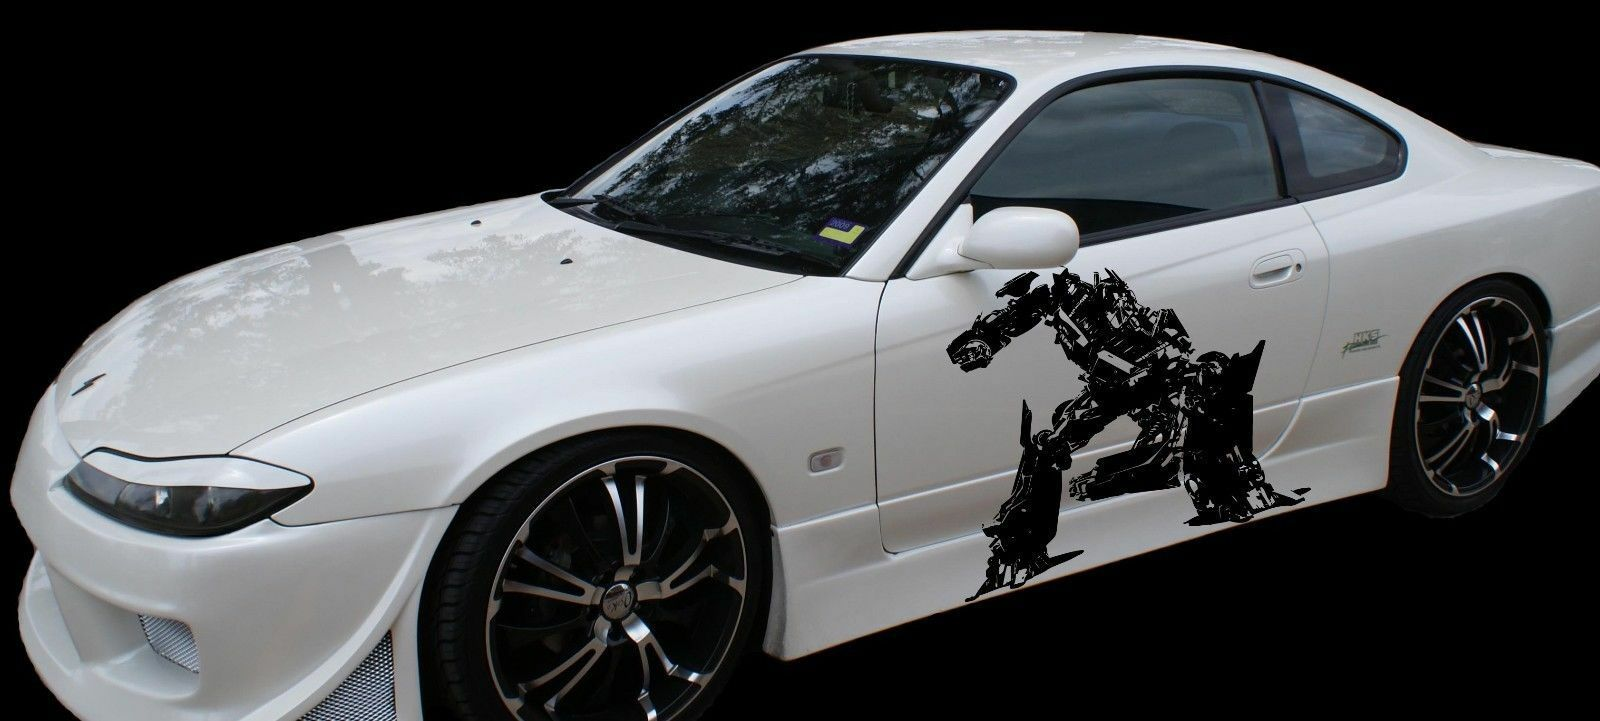 Car sticker designs images - Transformer Car Sticker